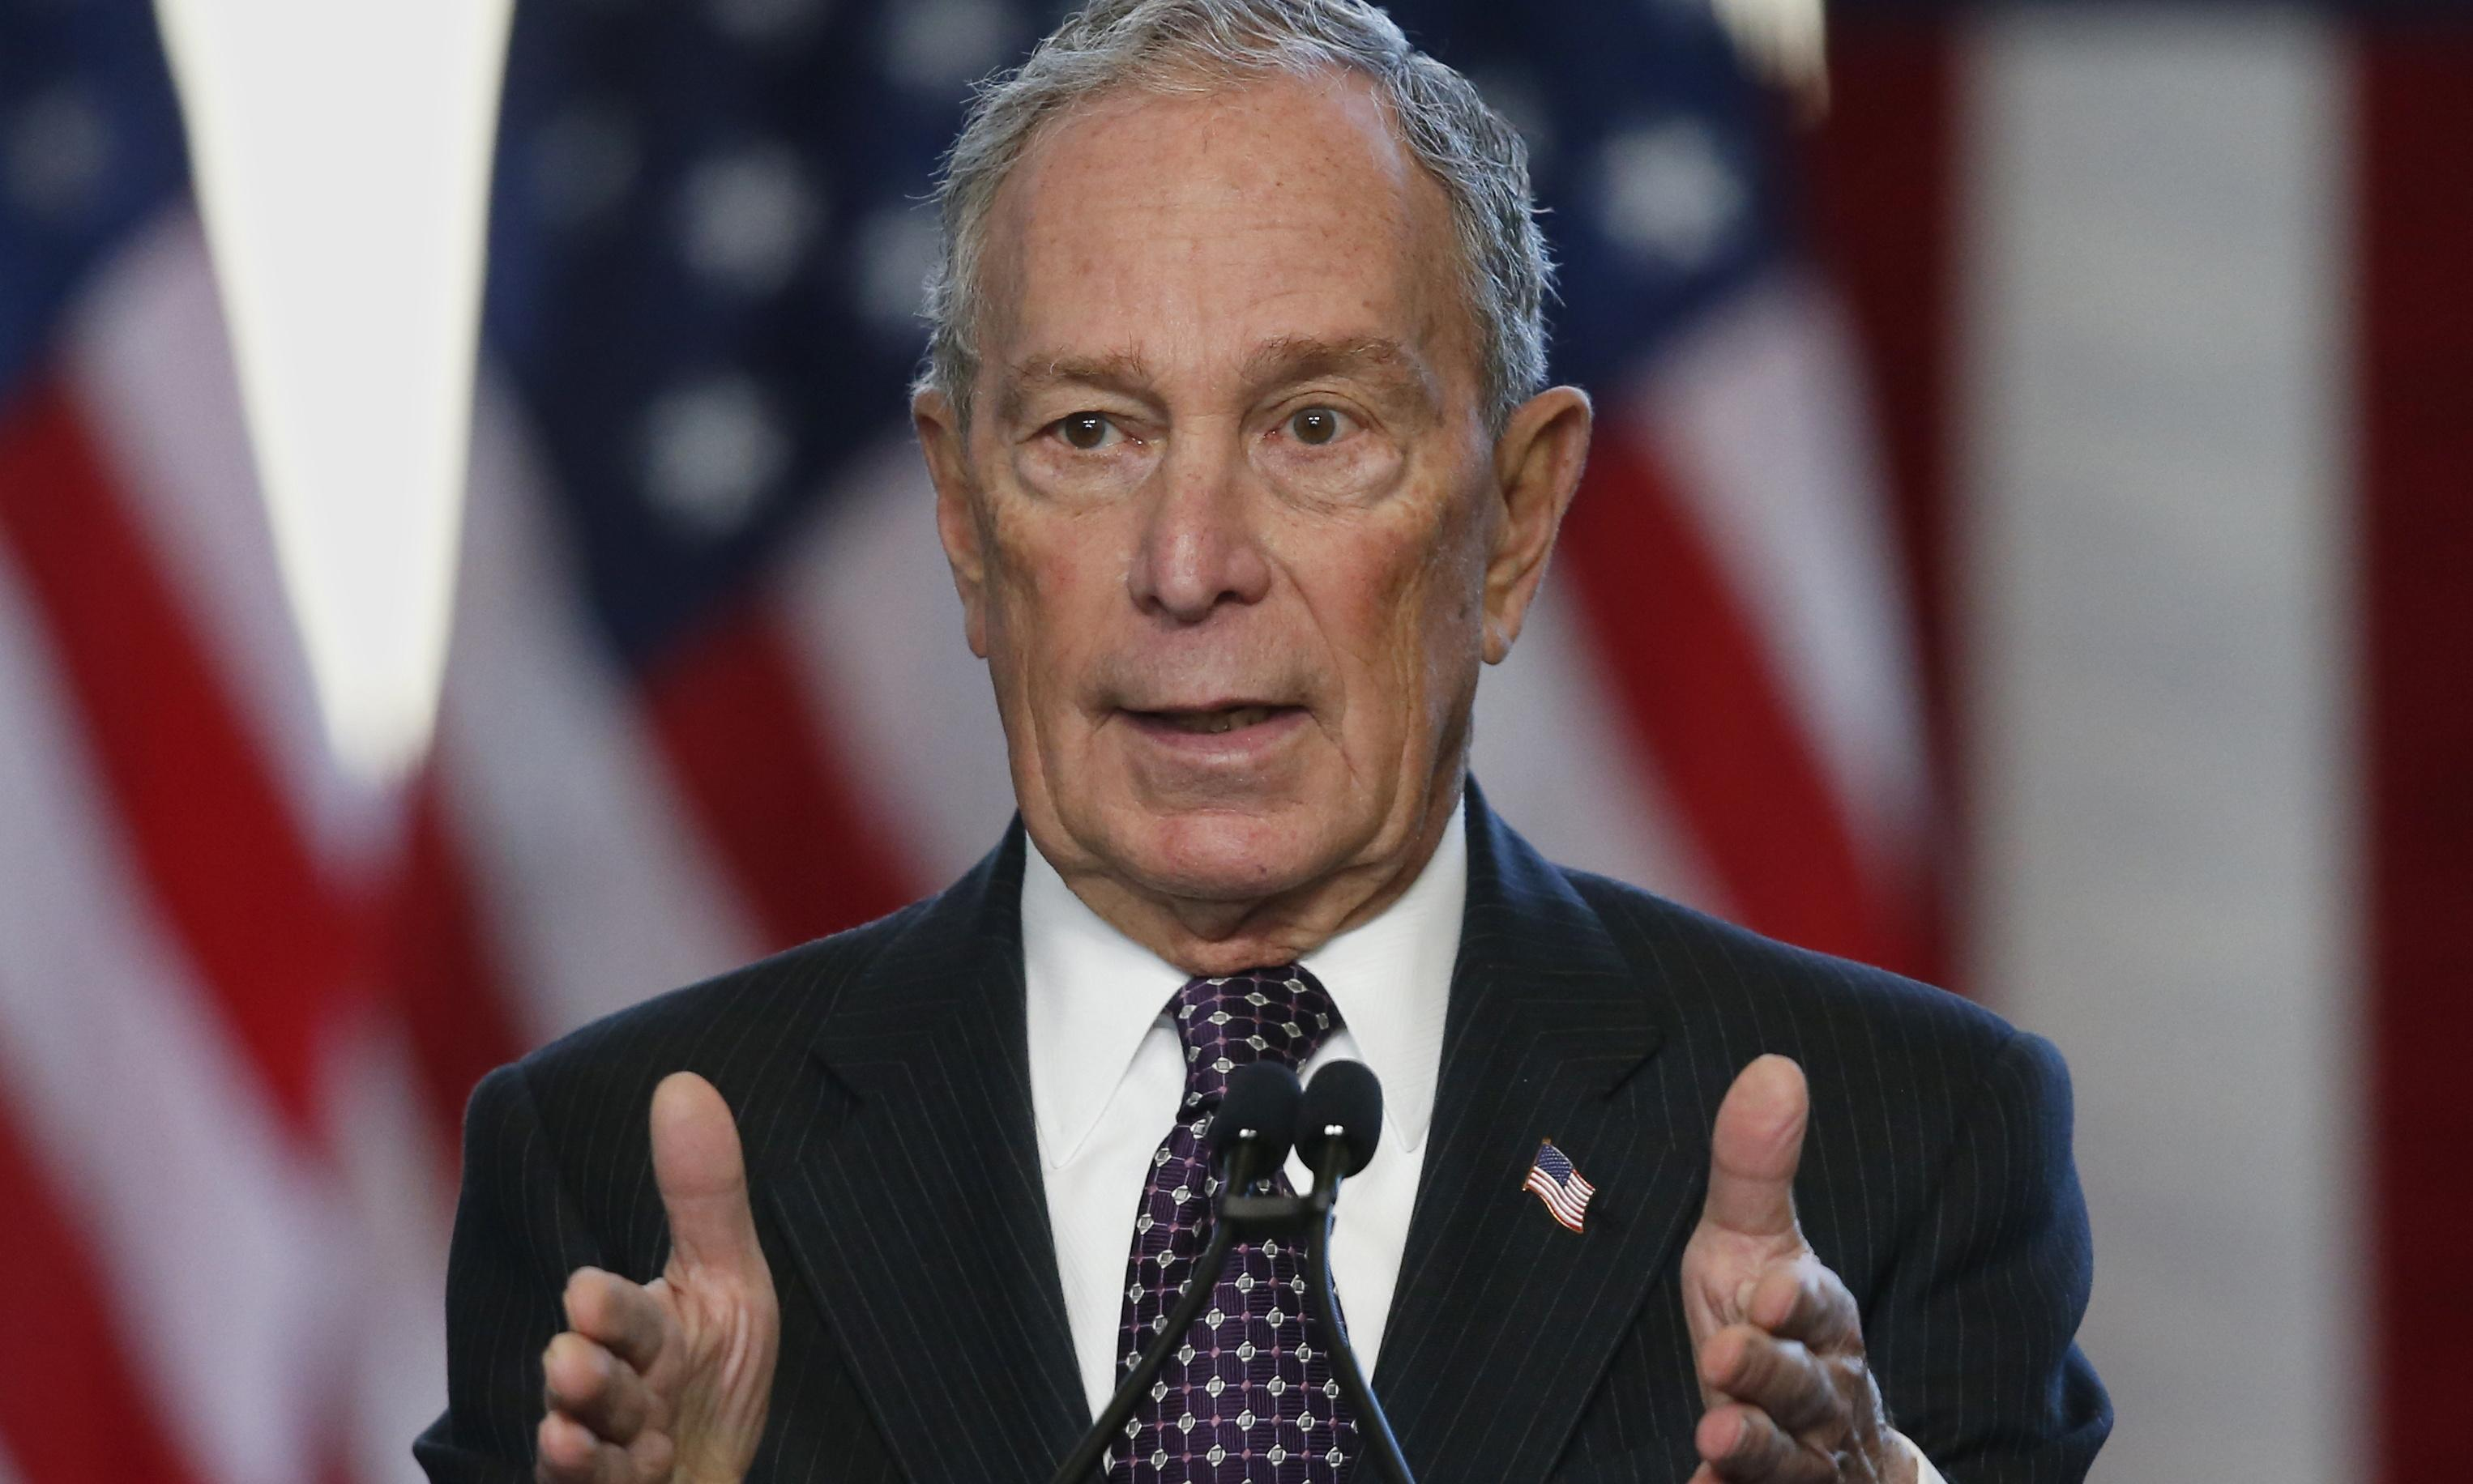 'Pathological liar': Bloomberg hits back at Trump 'Mini Mike' insult